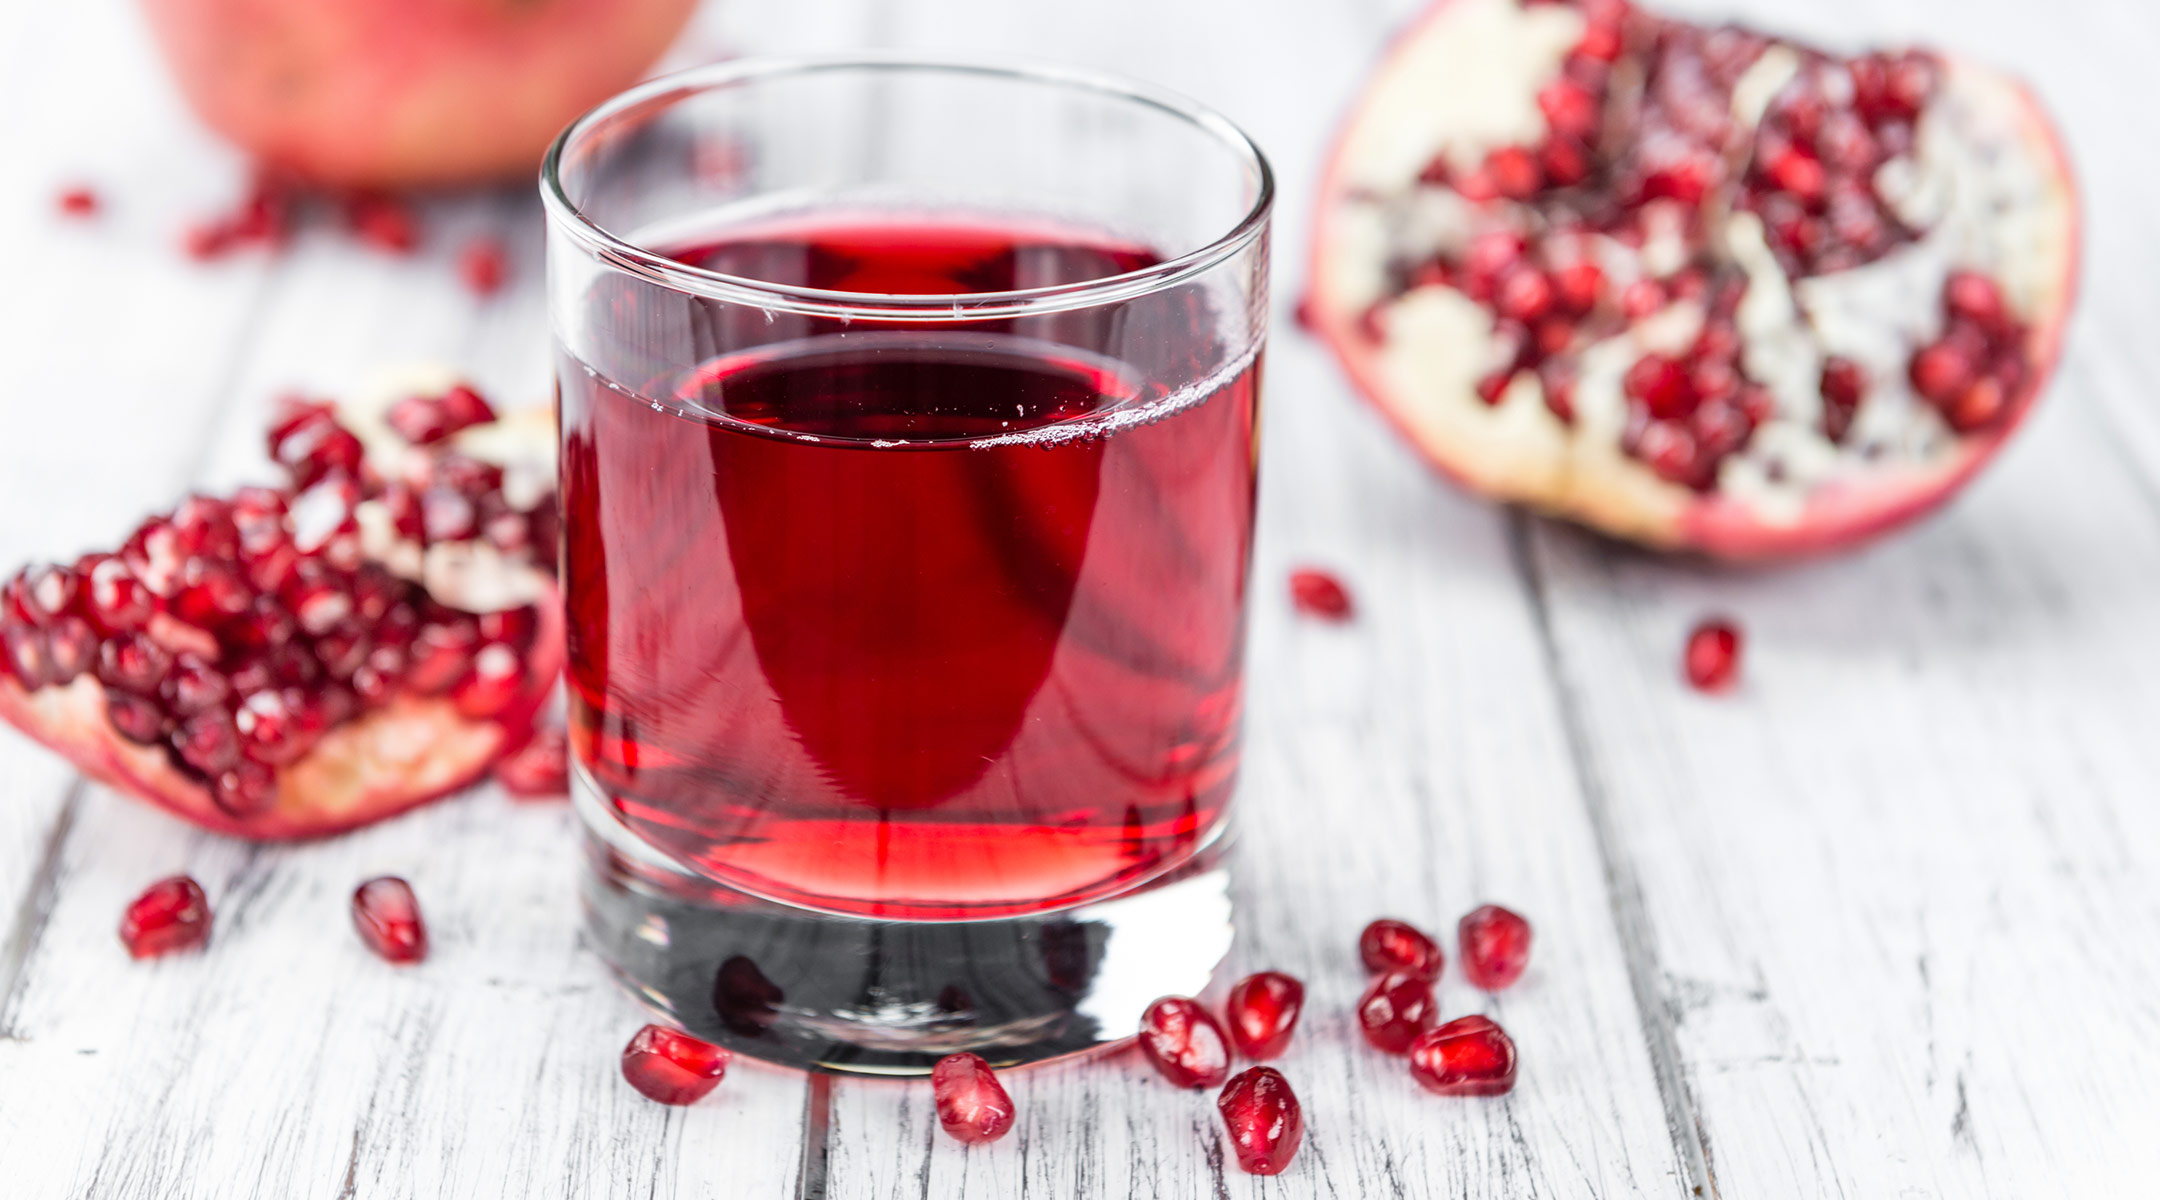 Study: There May Be a Link Between Pomegranate Juice During Pregnancy and Baby's Brain Development